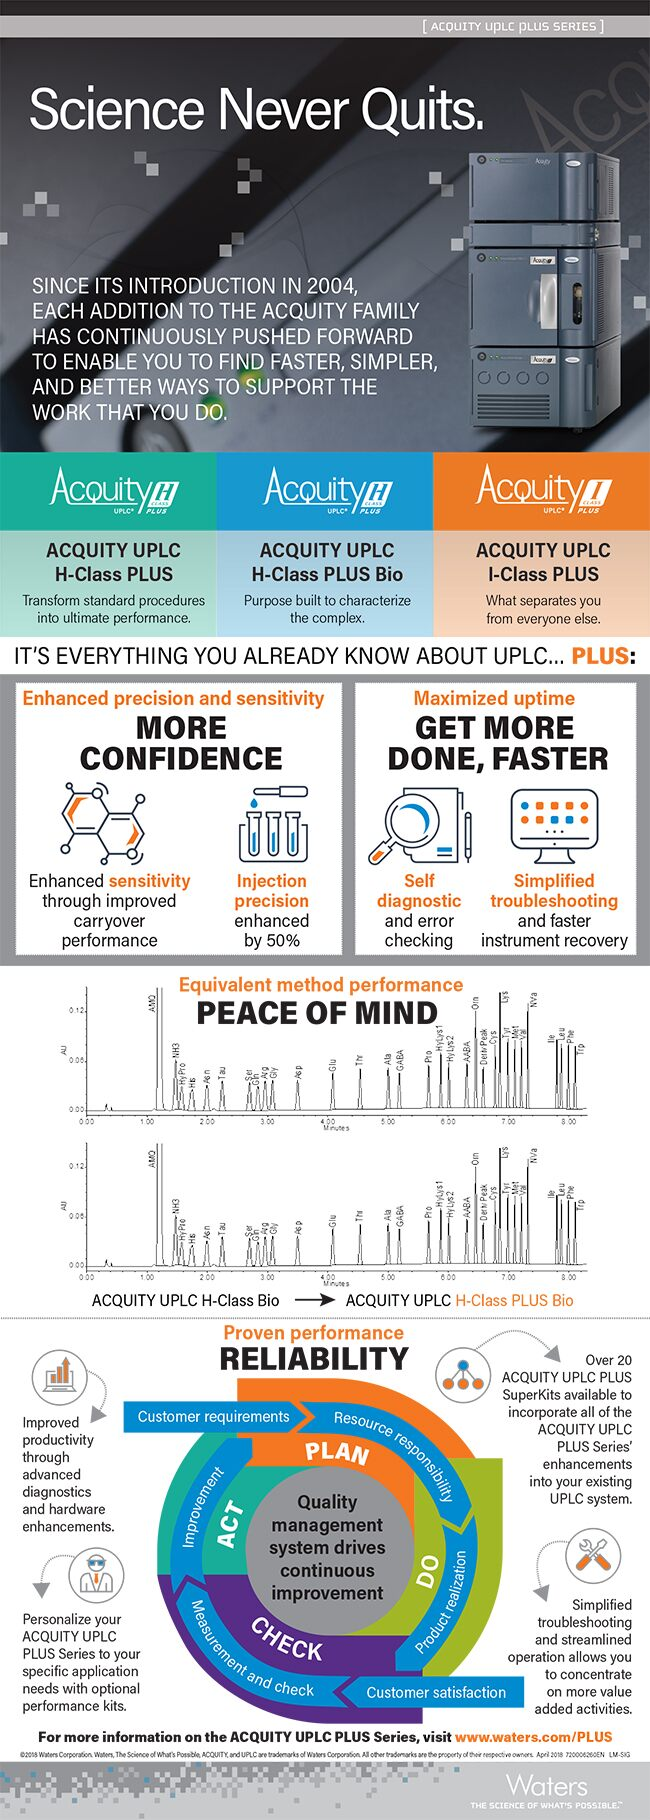 It's everything you know about UPLC. PLUS!